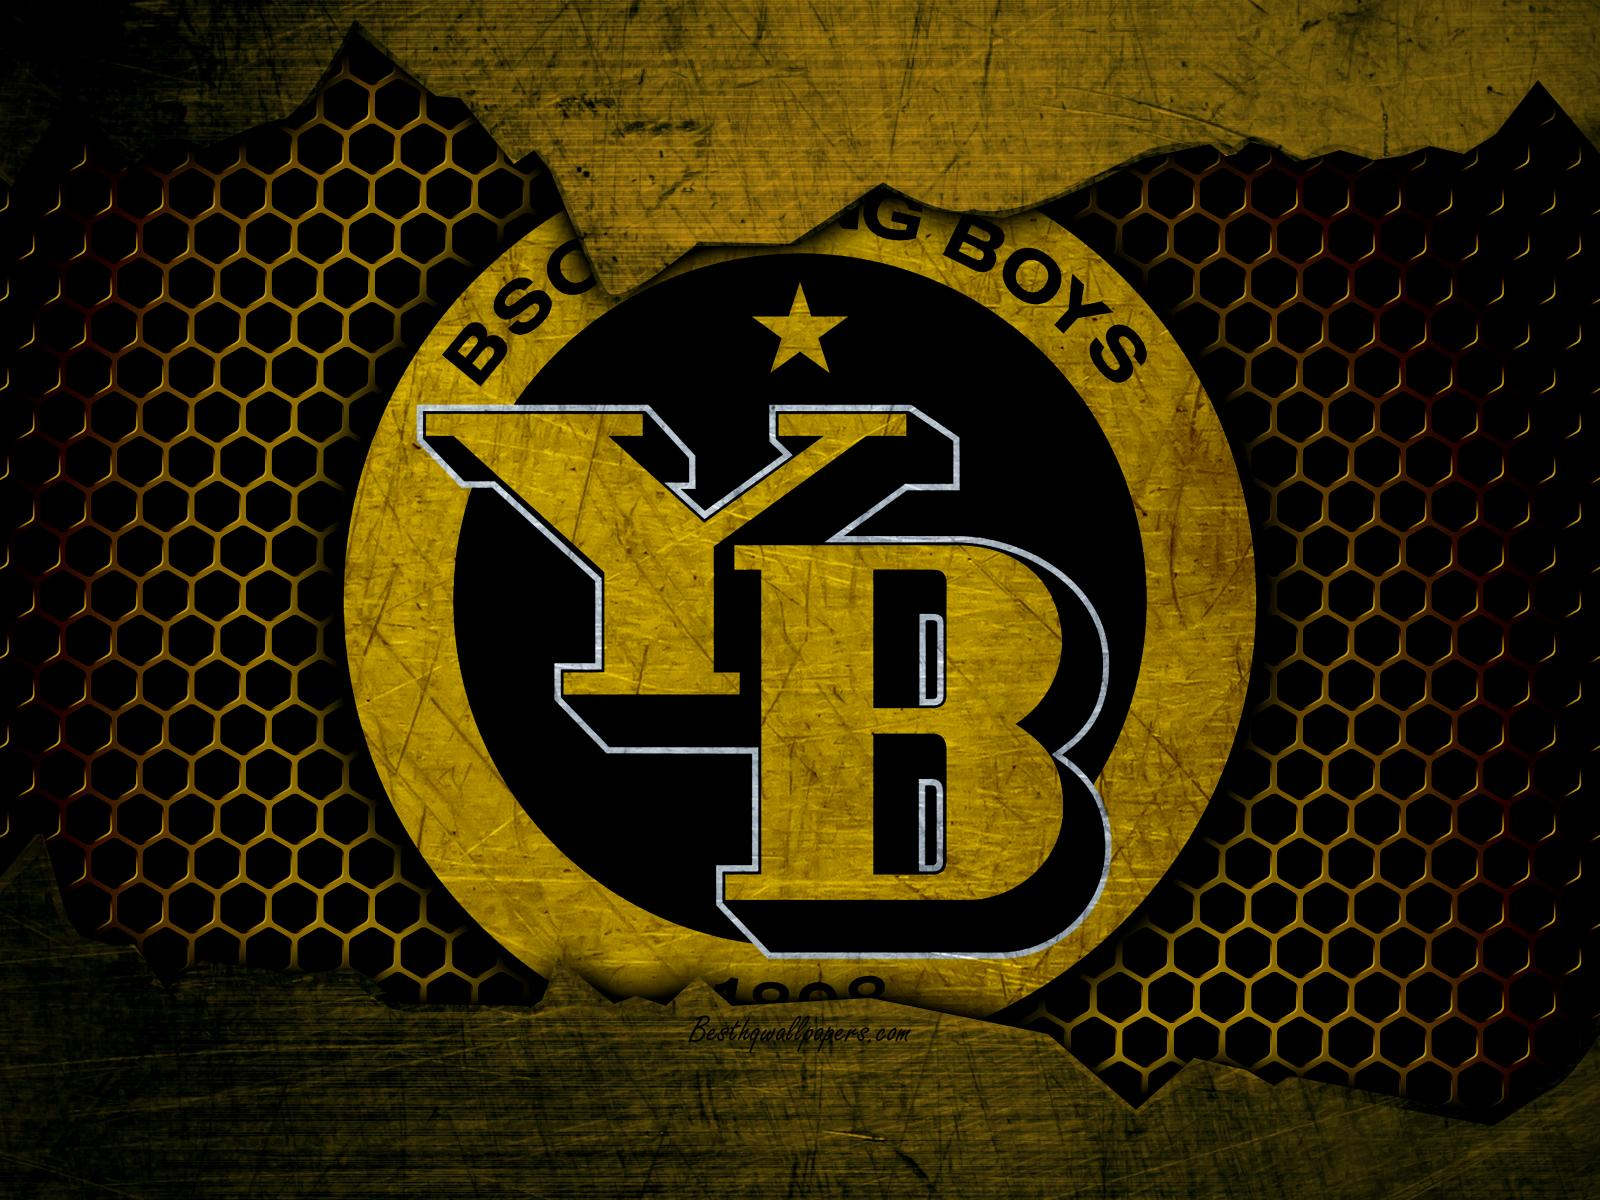 1600x1200 - BSC Young Boys Wallpapers 20